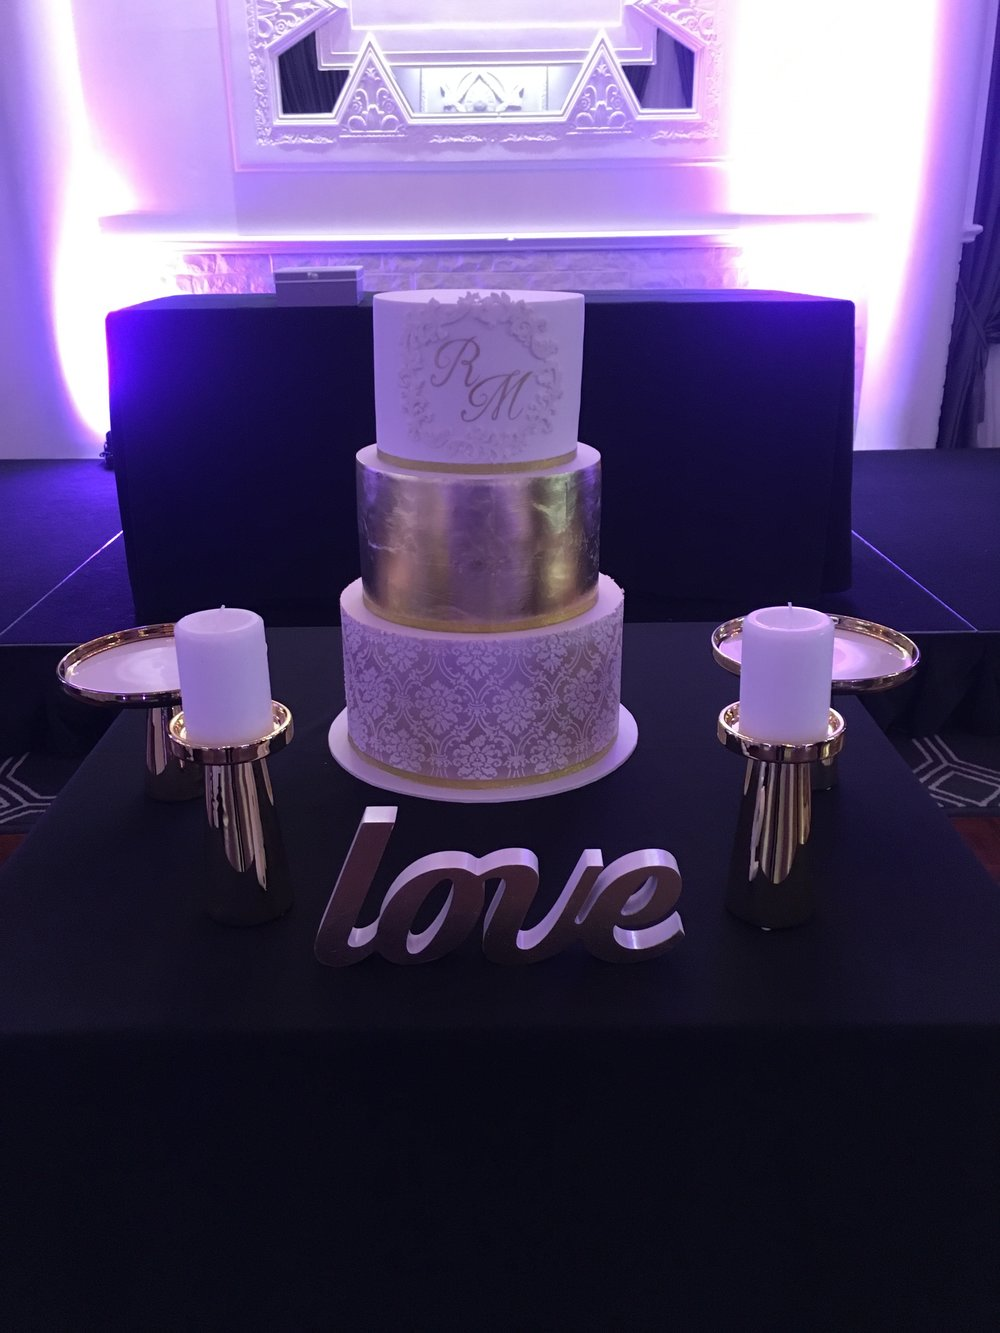 Gold Leaf Wedding Cake with Initials